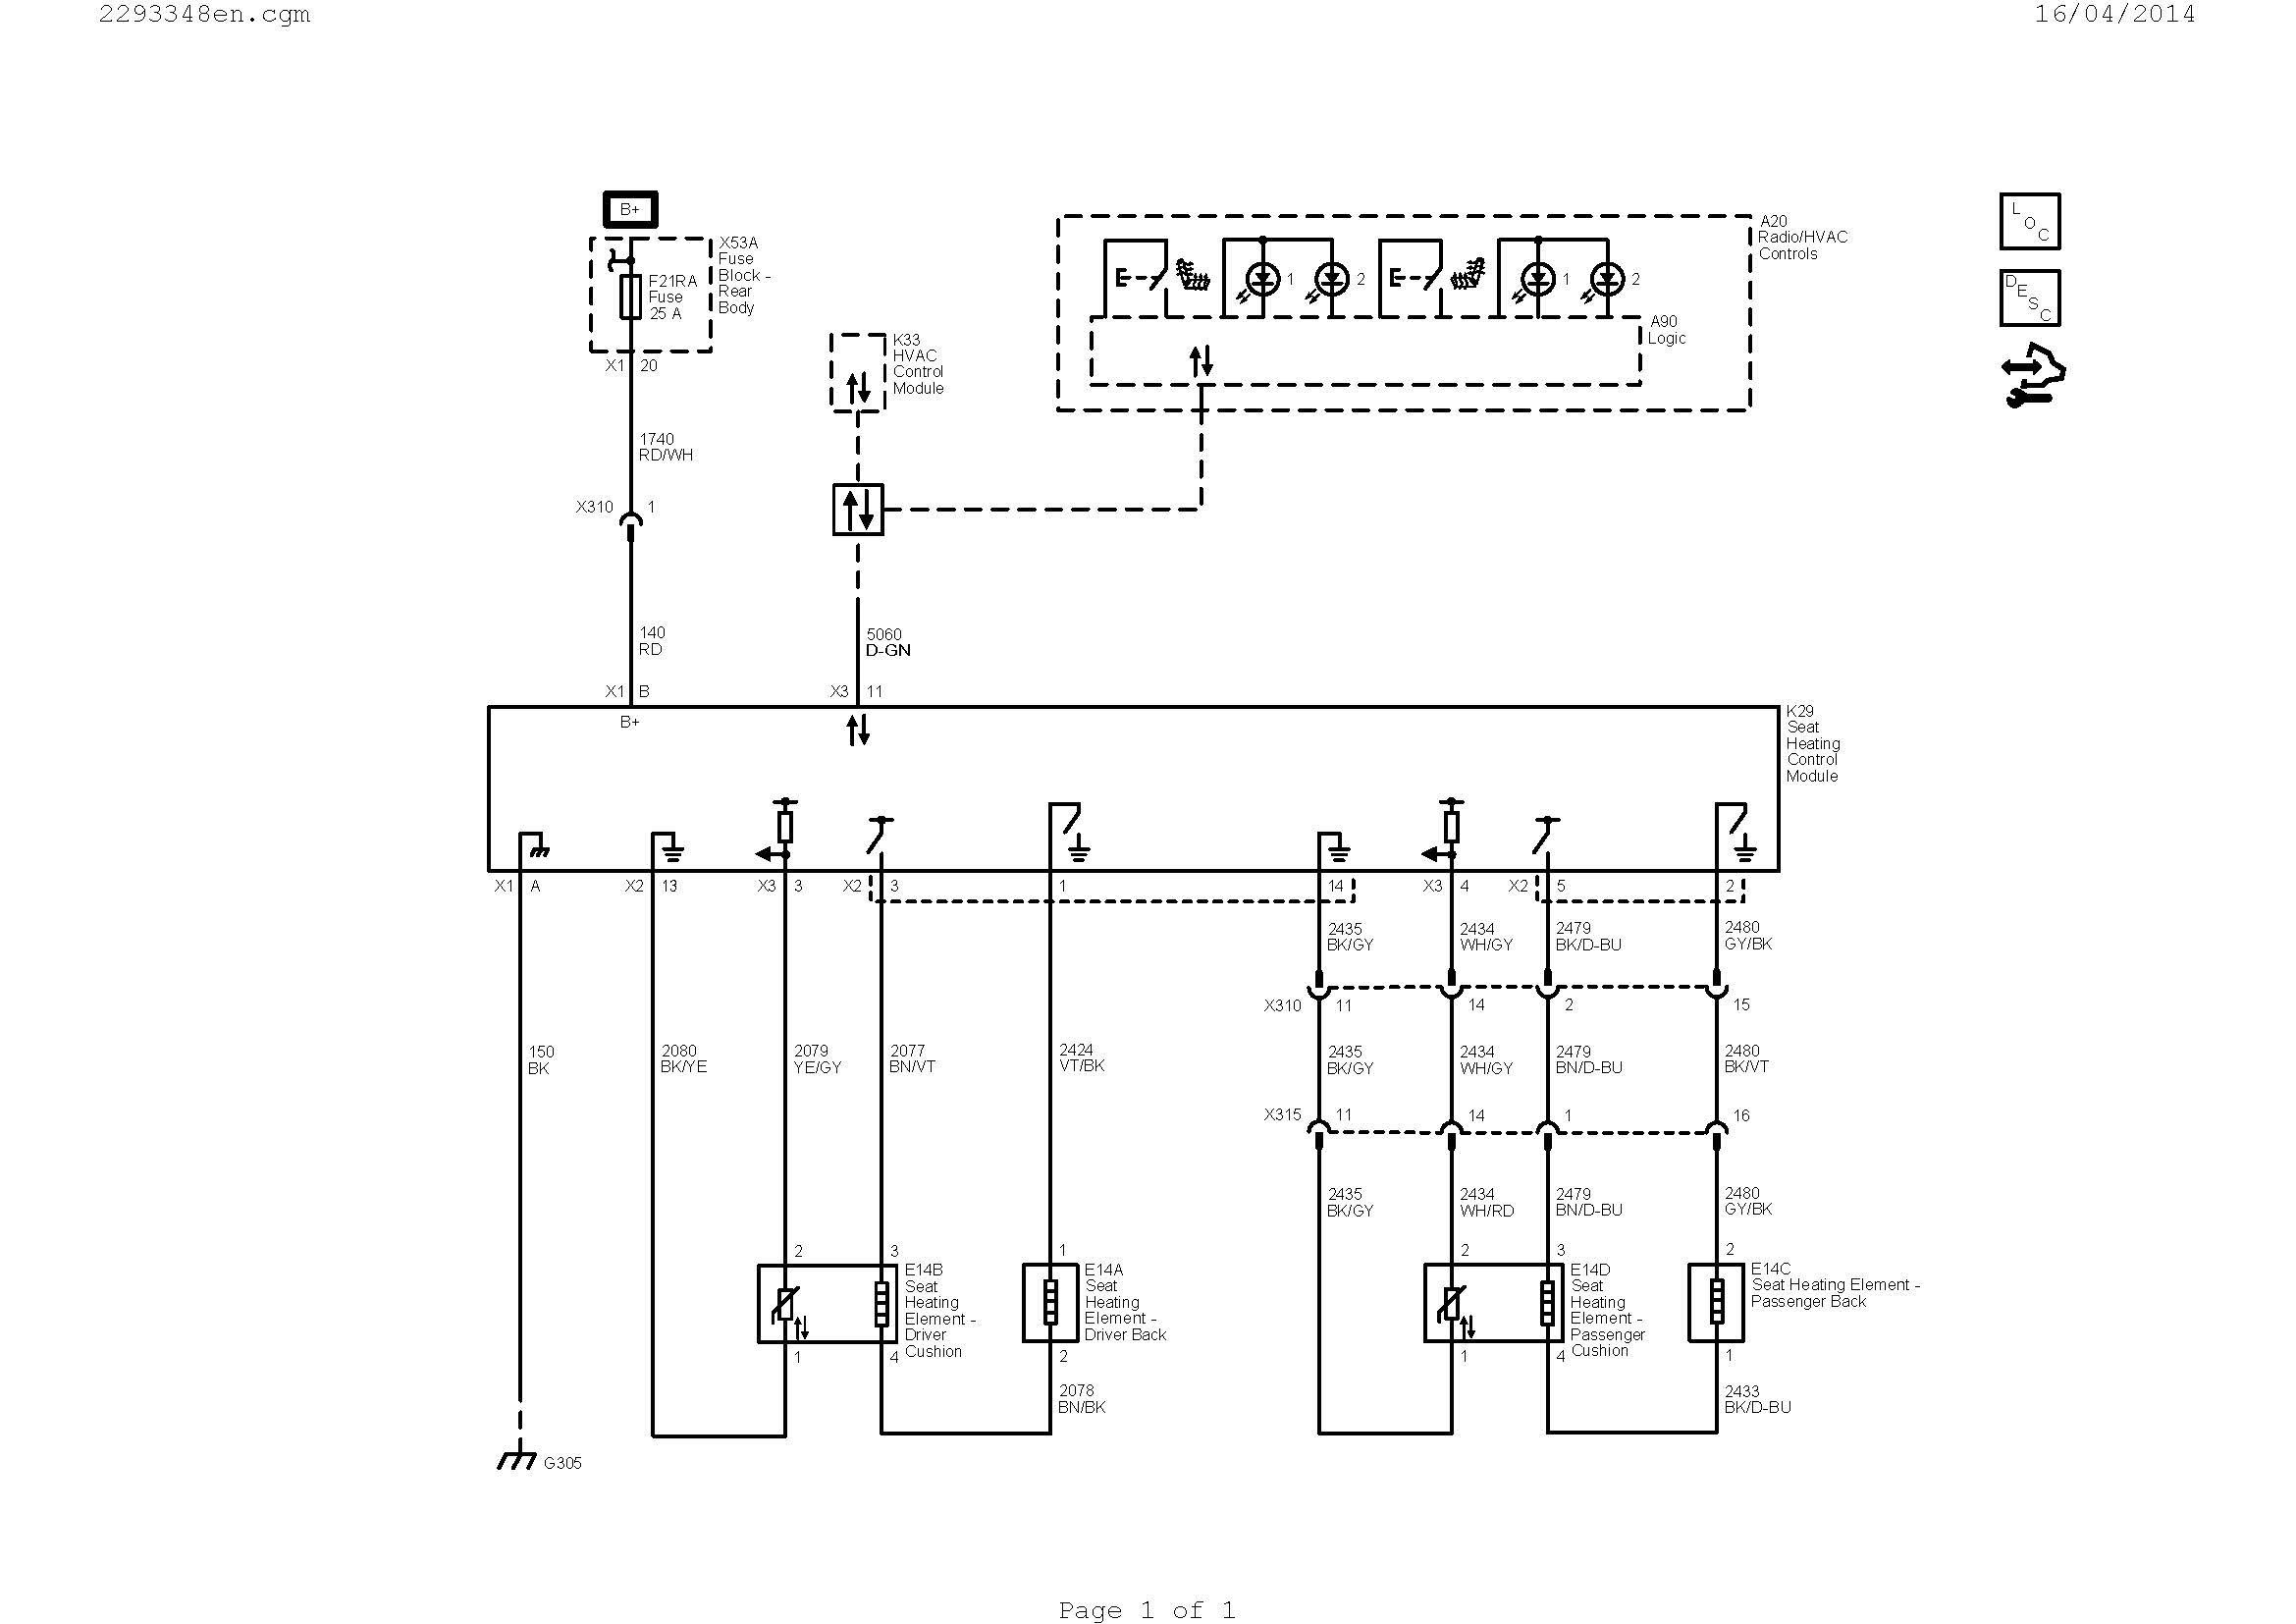 electrical wiring diagram software Collection-Electrical Wiring Diagram software Free New Wiring Diagram Guitar Fresh Hvac Diagram Best Hvac Diagram 0d 19-g